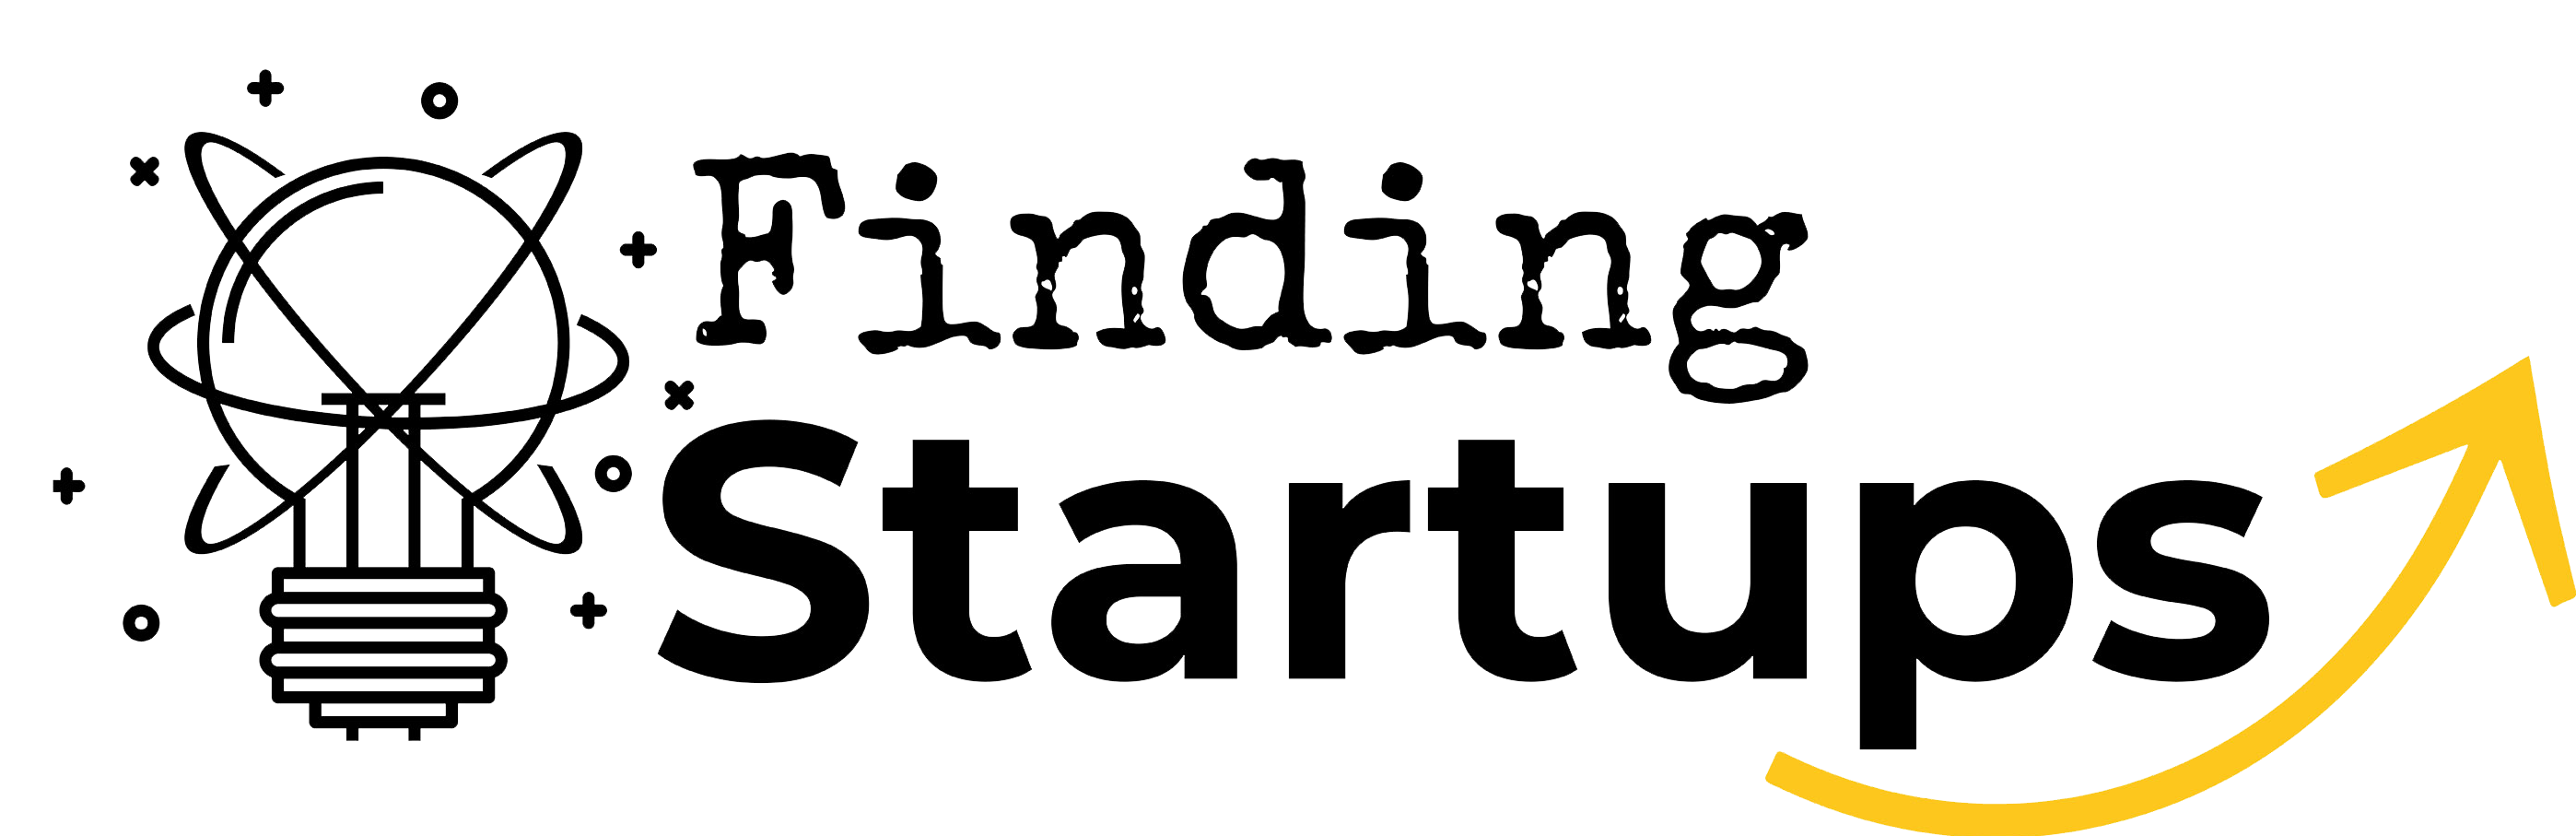 Finding startups - supporter